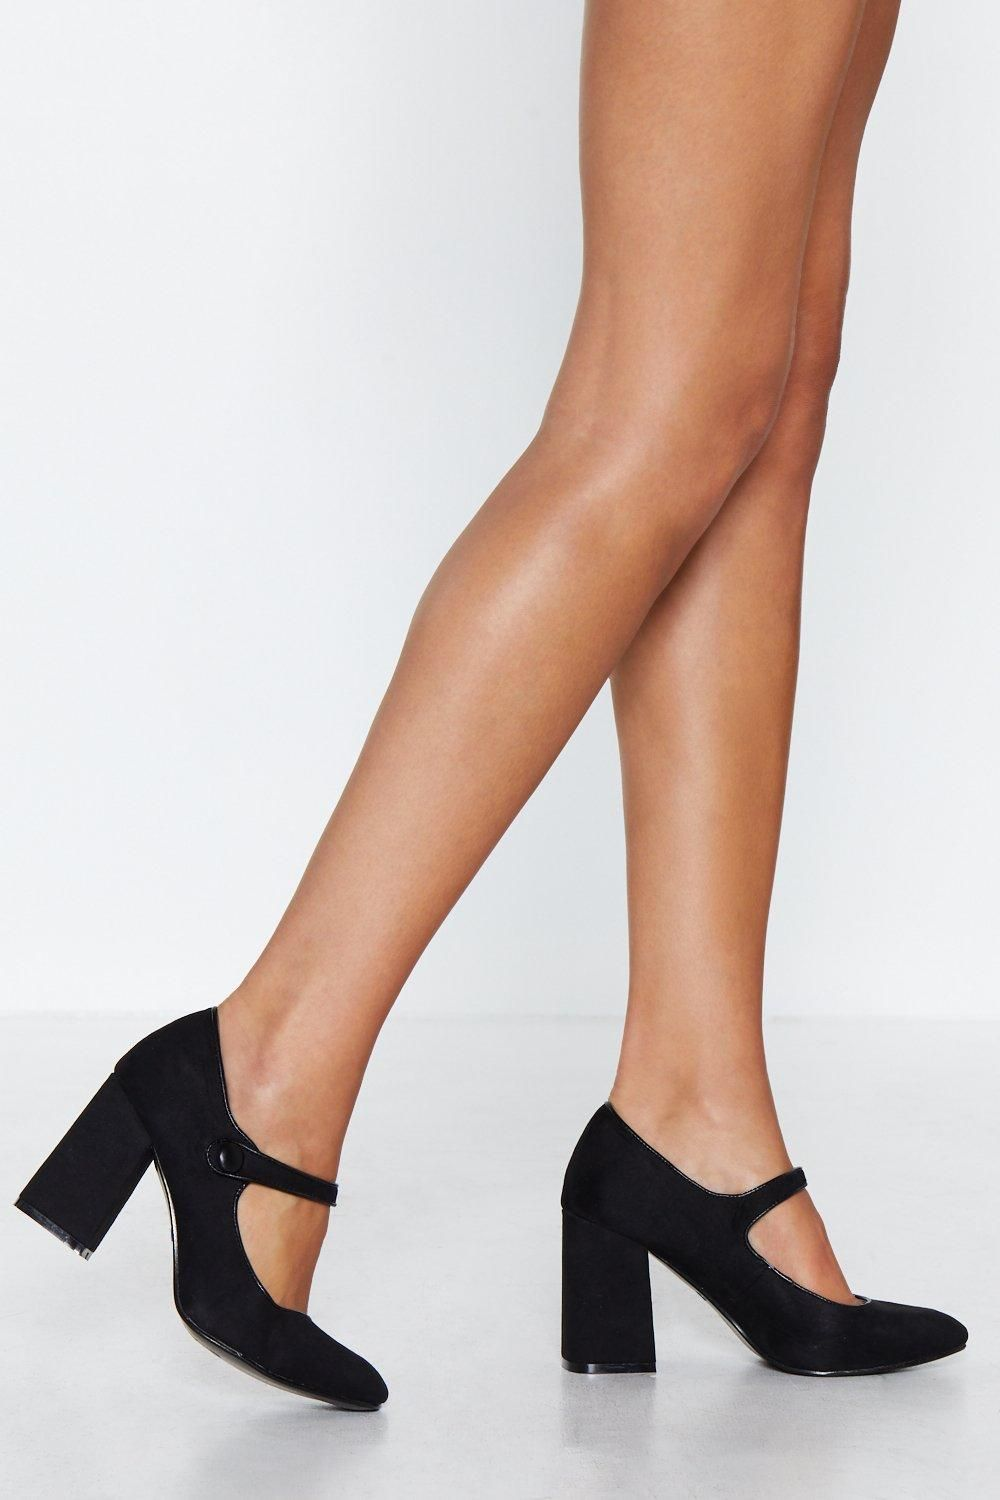 bc233100ae467 The Marry Me Heel comes in faux suede and features a block heel